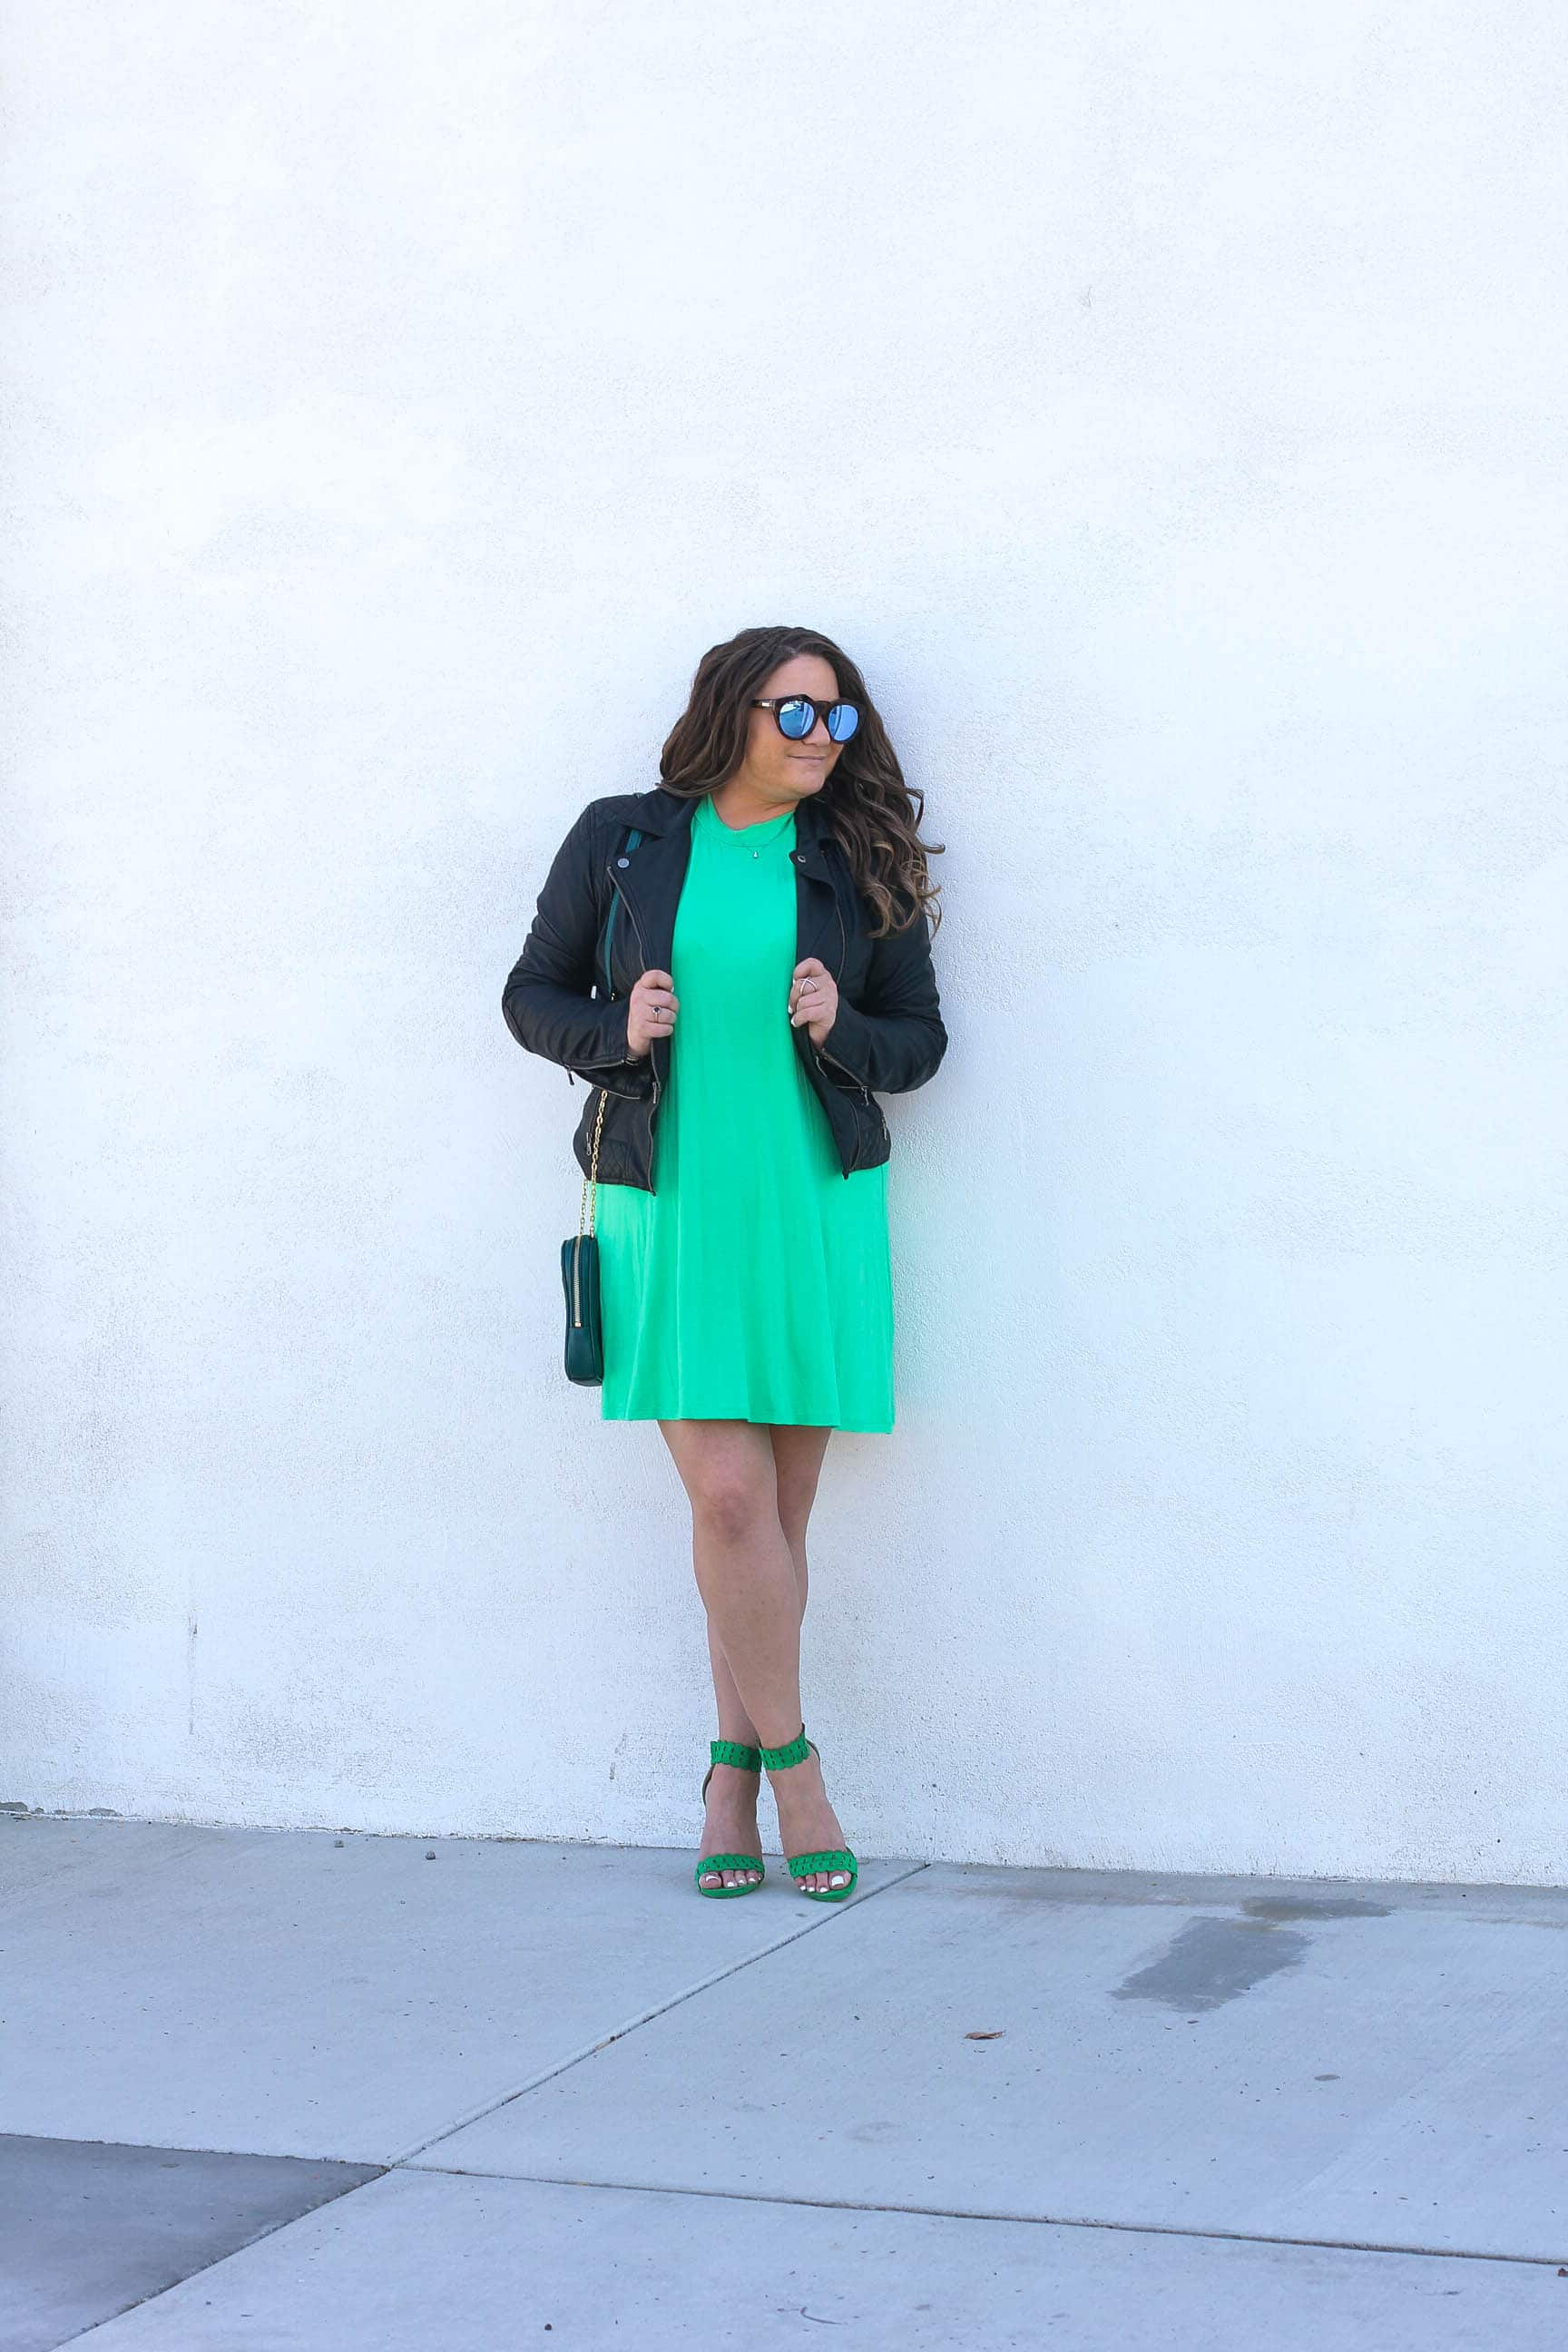 la blogger, style blogger, fashion blogger, missyonmadison, missyonmadison blog, missyonmadison instagram, melissa tierney, st patricks day, st patricks day 2018, green dress, what to wear for st patricks day, green look, bloglovin, green heels, green handbag, green outfit, moto jacket, faux leather moto jacket,